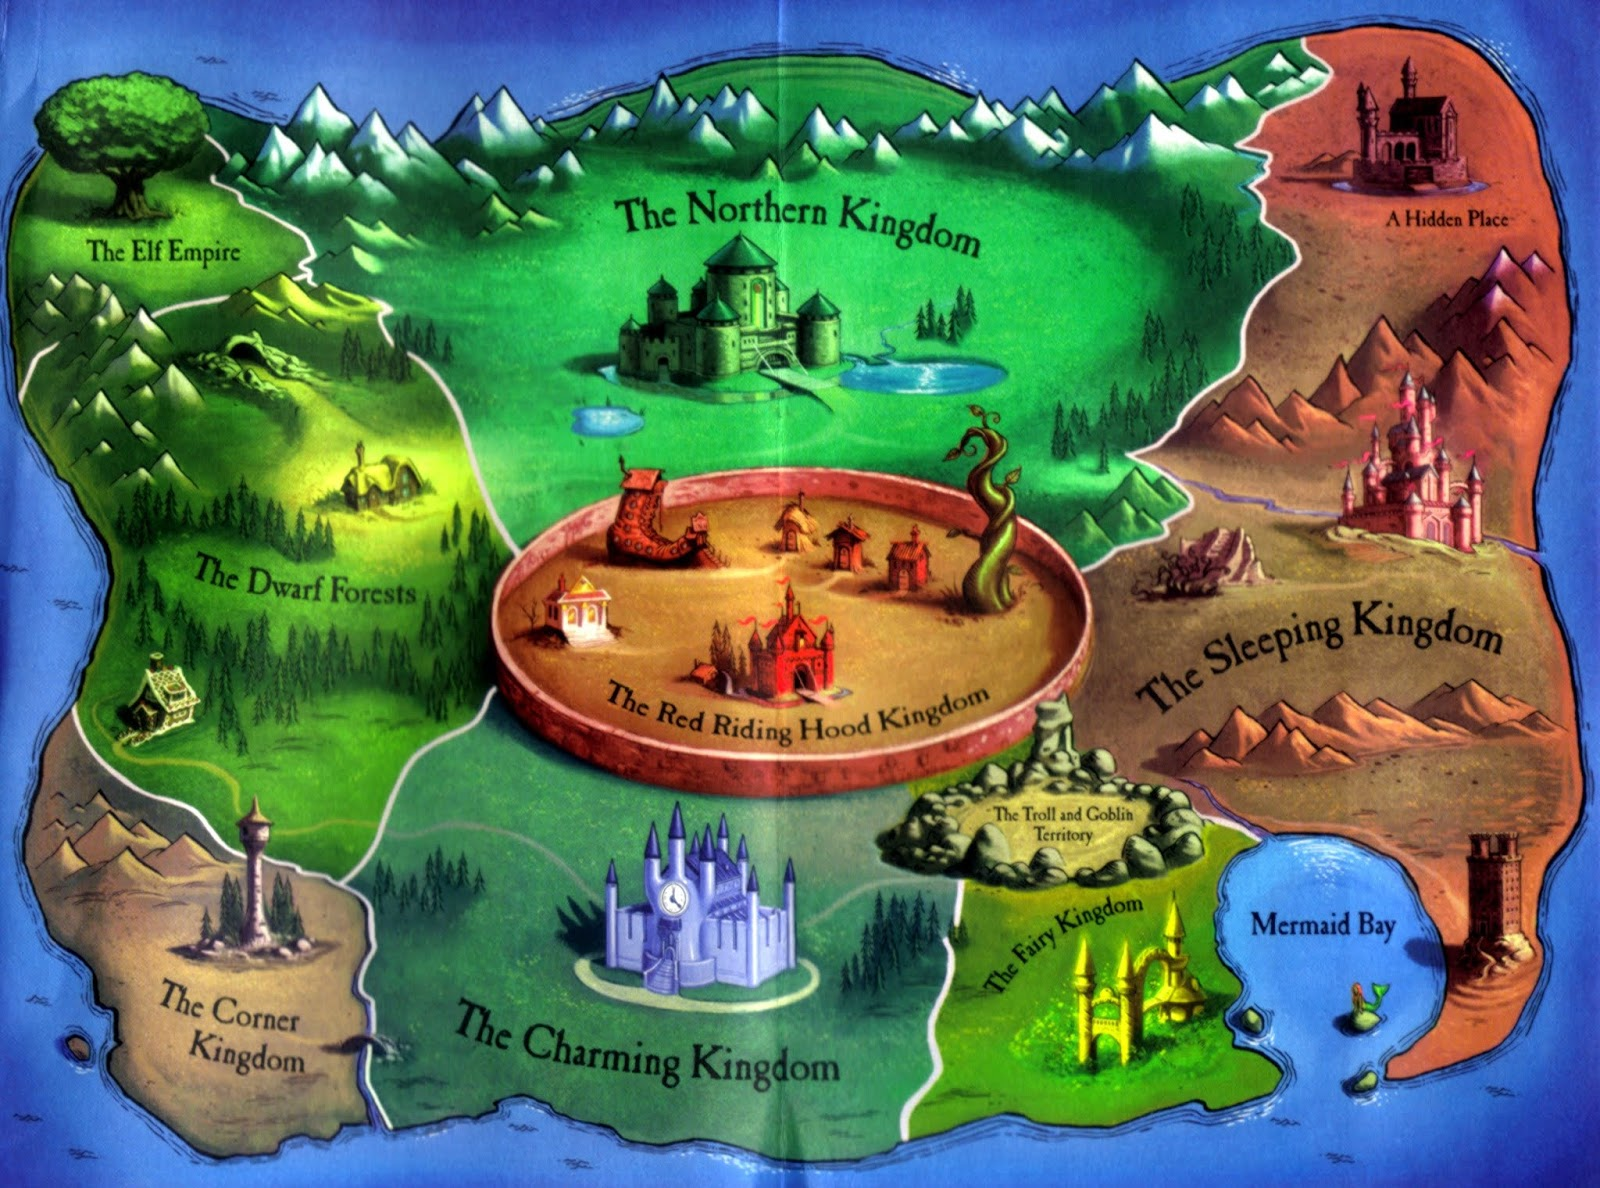 the inside cover of the book flipped out to reveal a map of the land of stories which also seemed to promise an immersive world